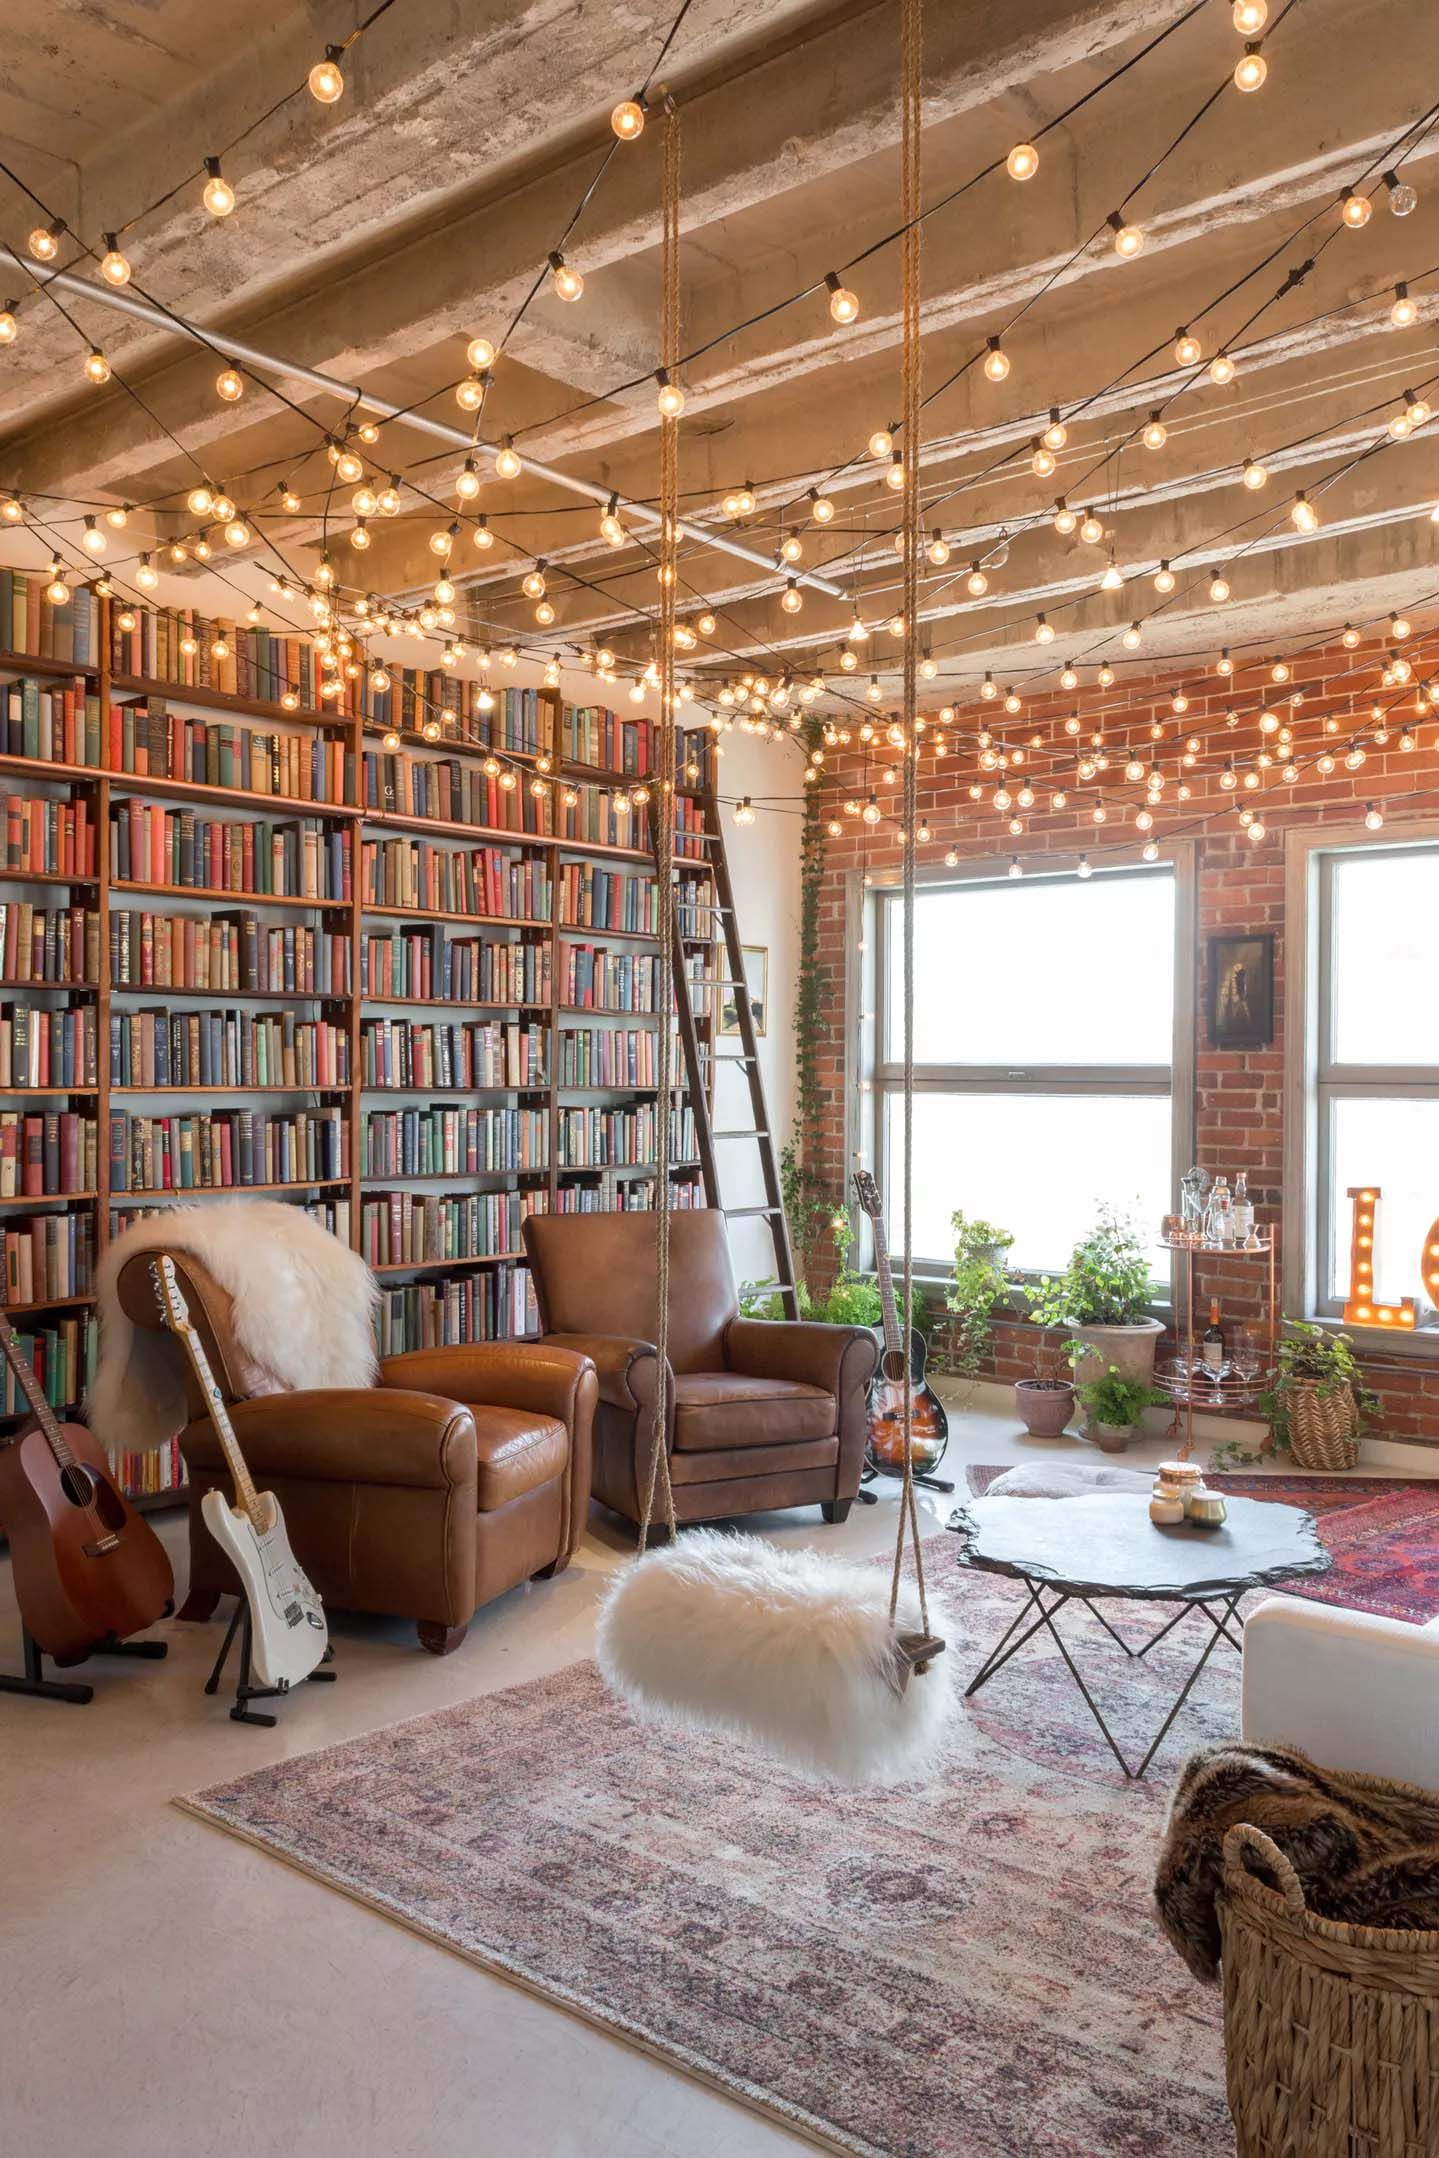 Living Room Library Design Ideas: Pin On Home